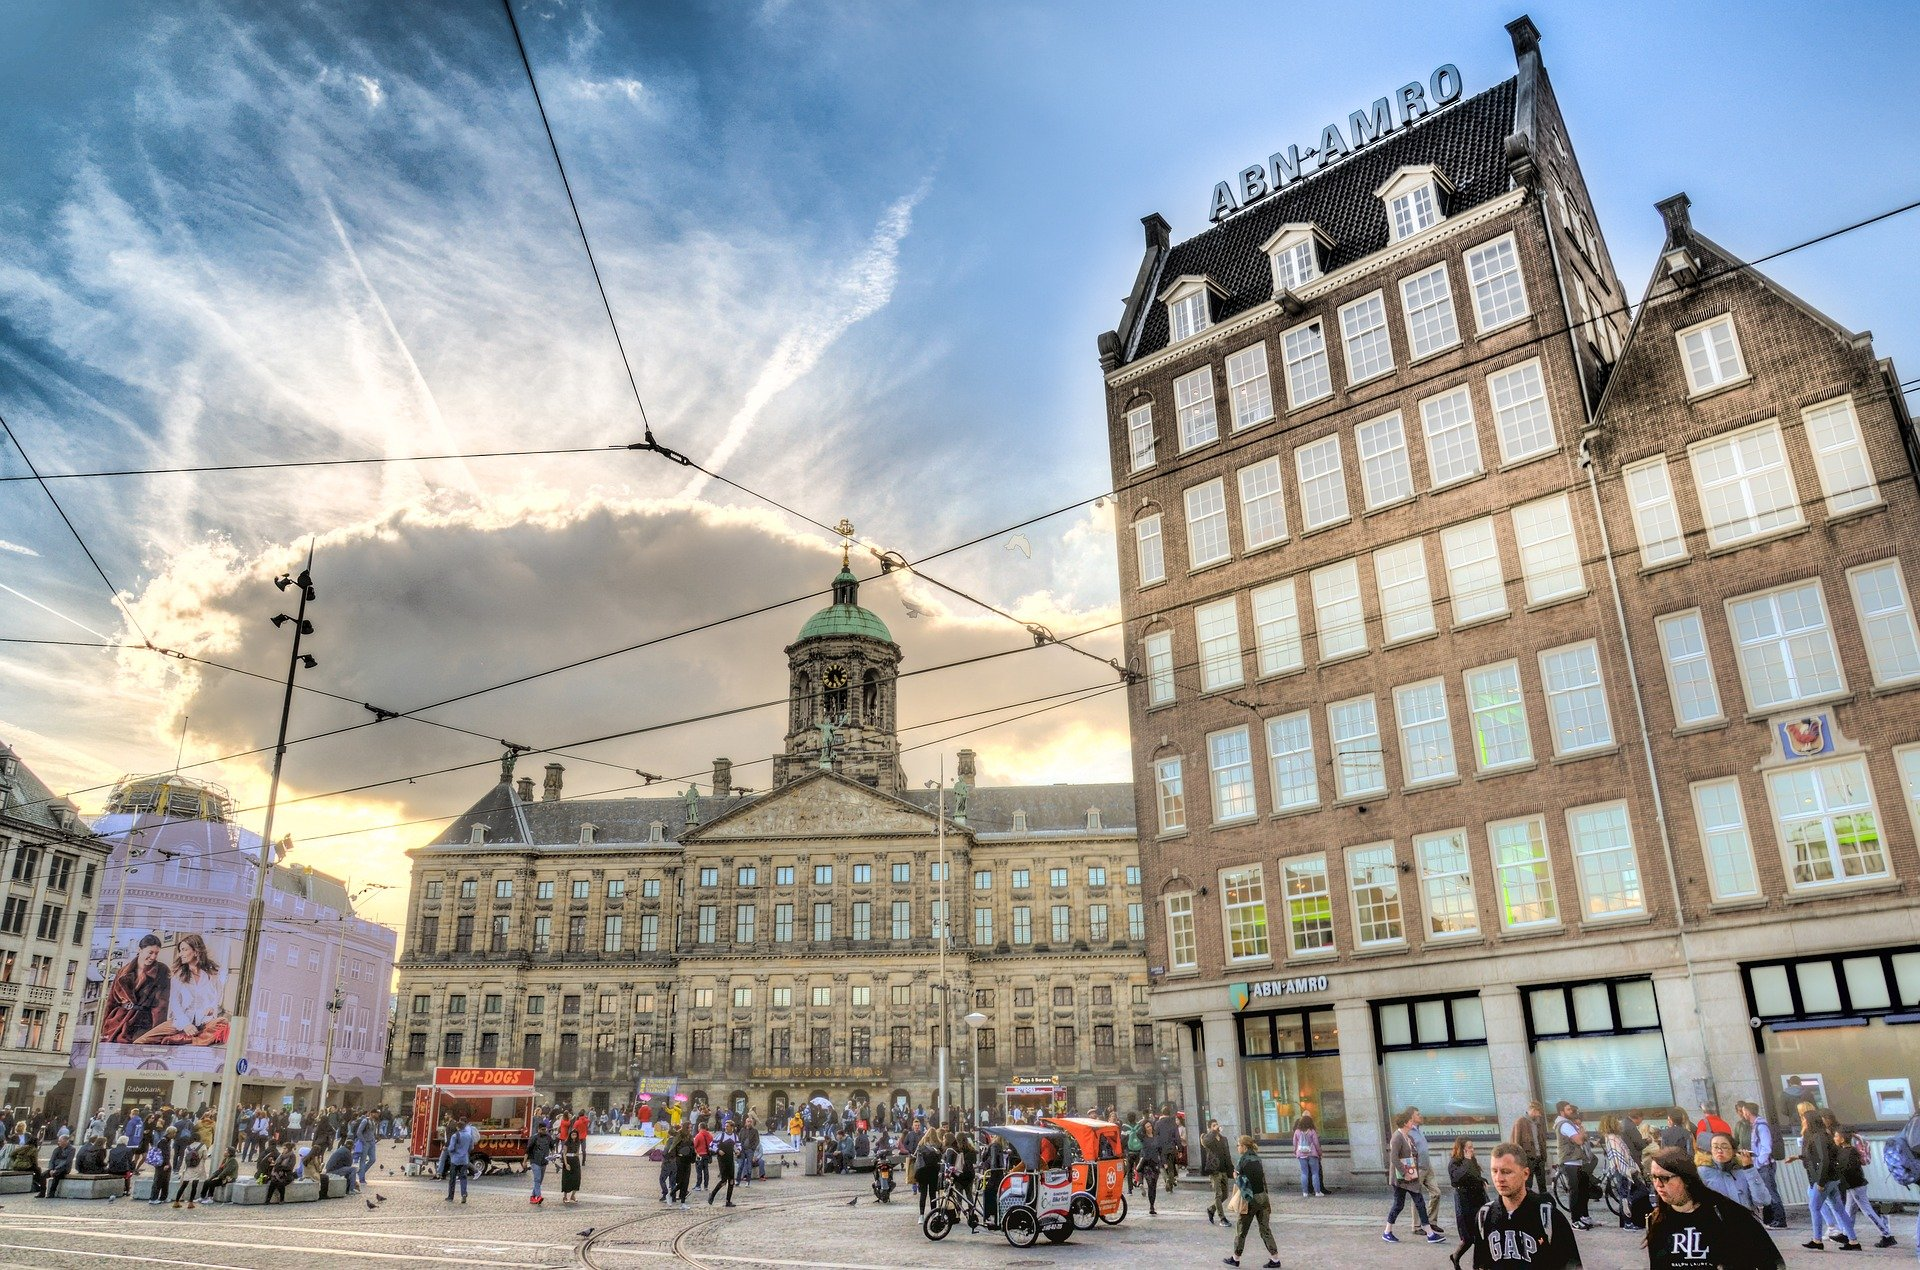 Amsterdam Attractions - Dam Square with the Royal Palace